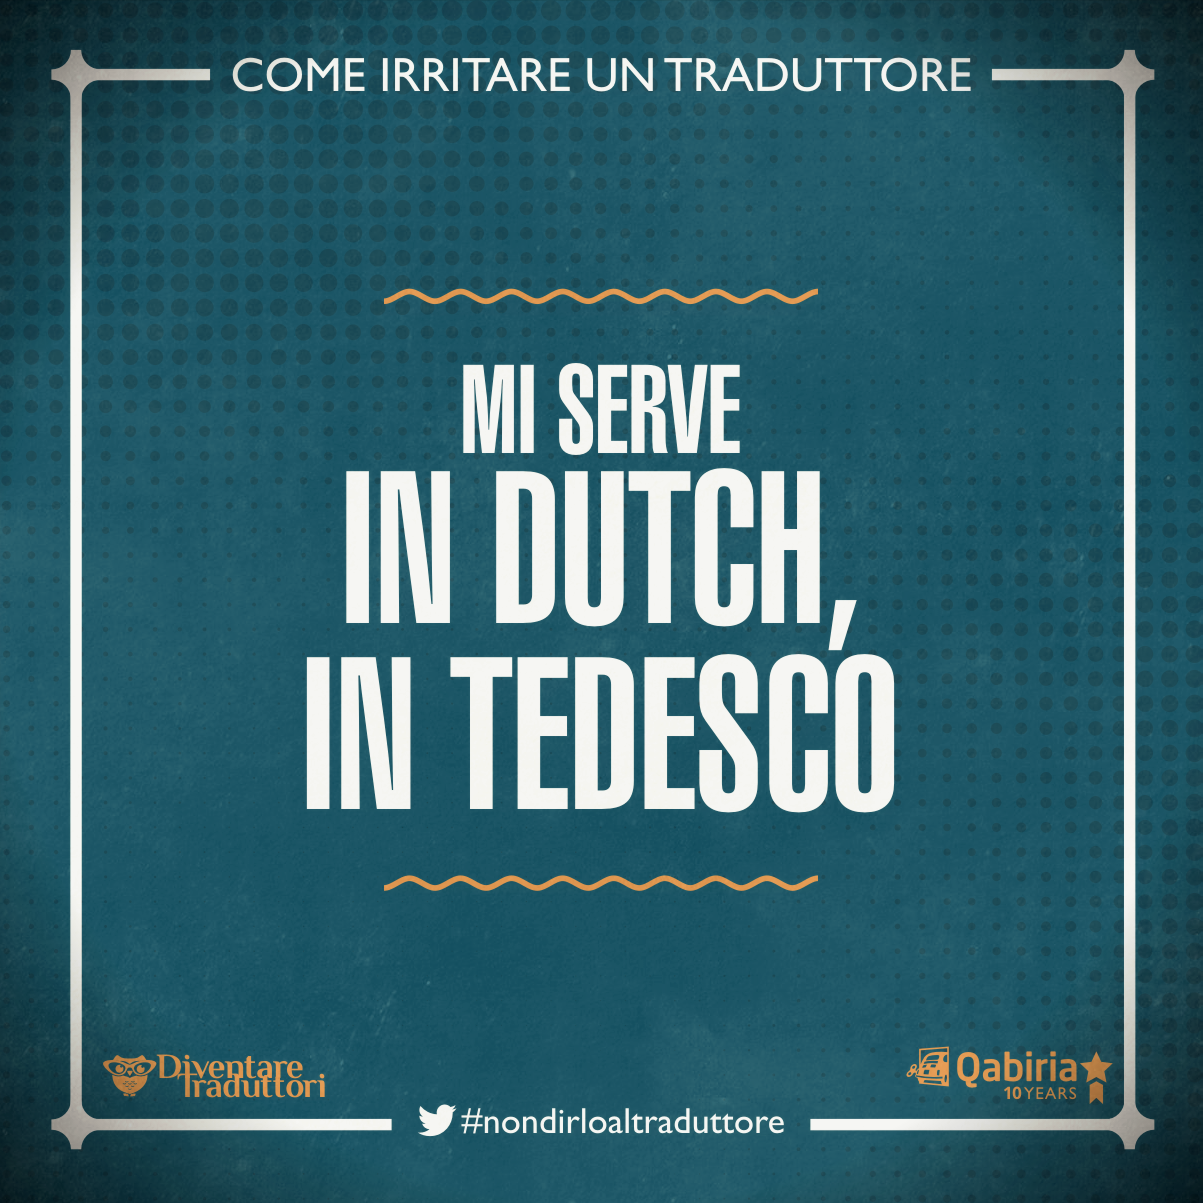 Dutch, tedesco